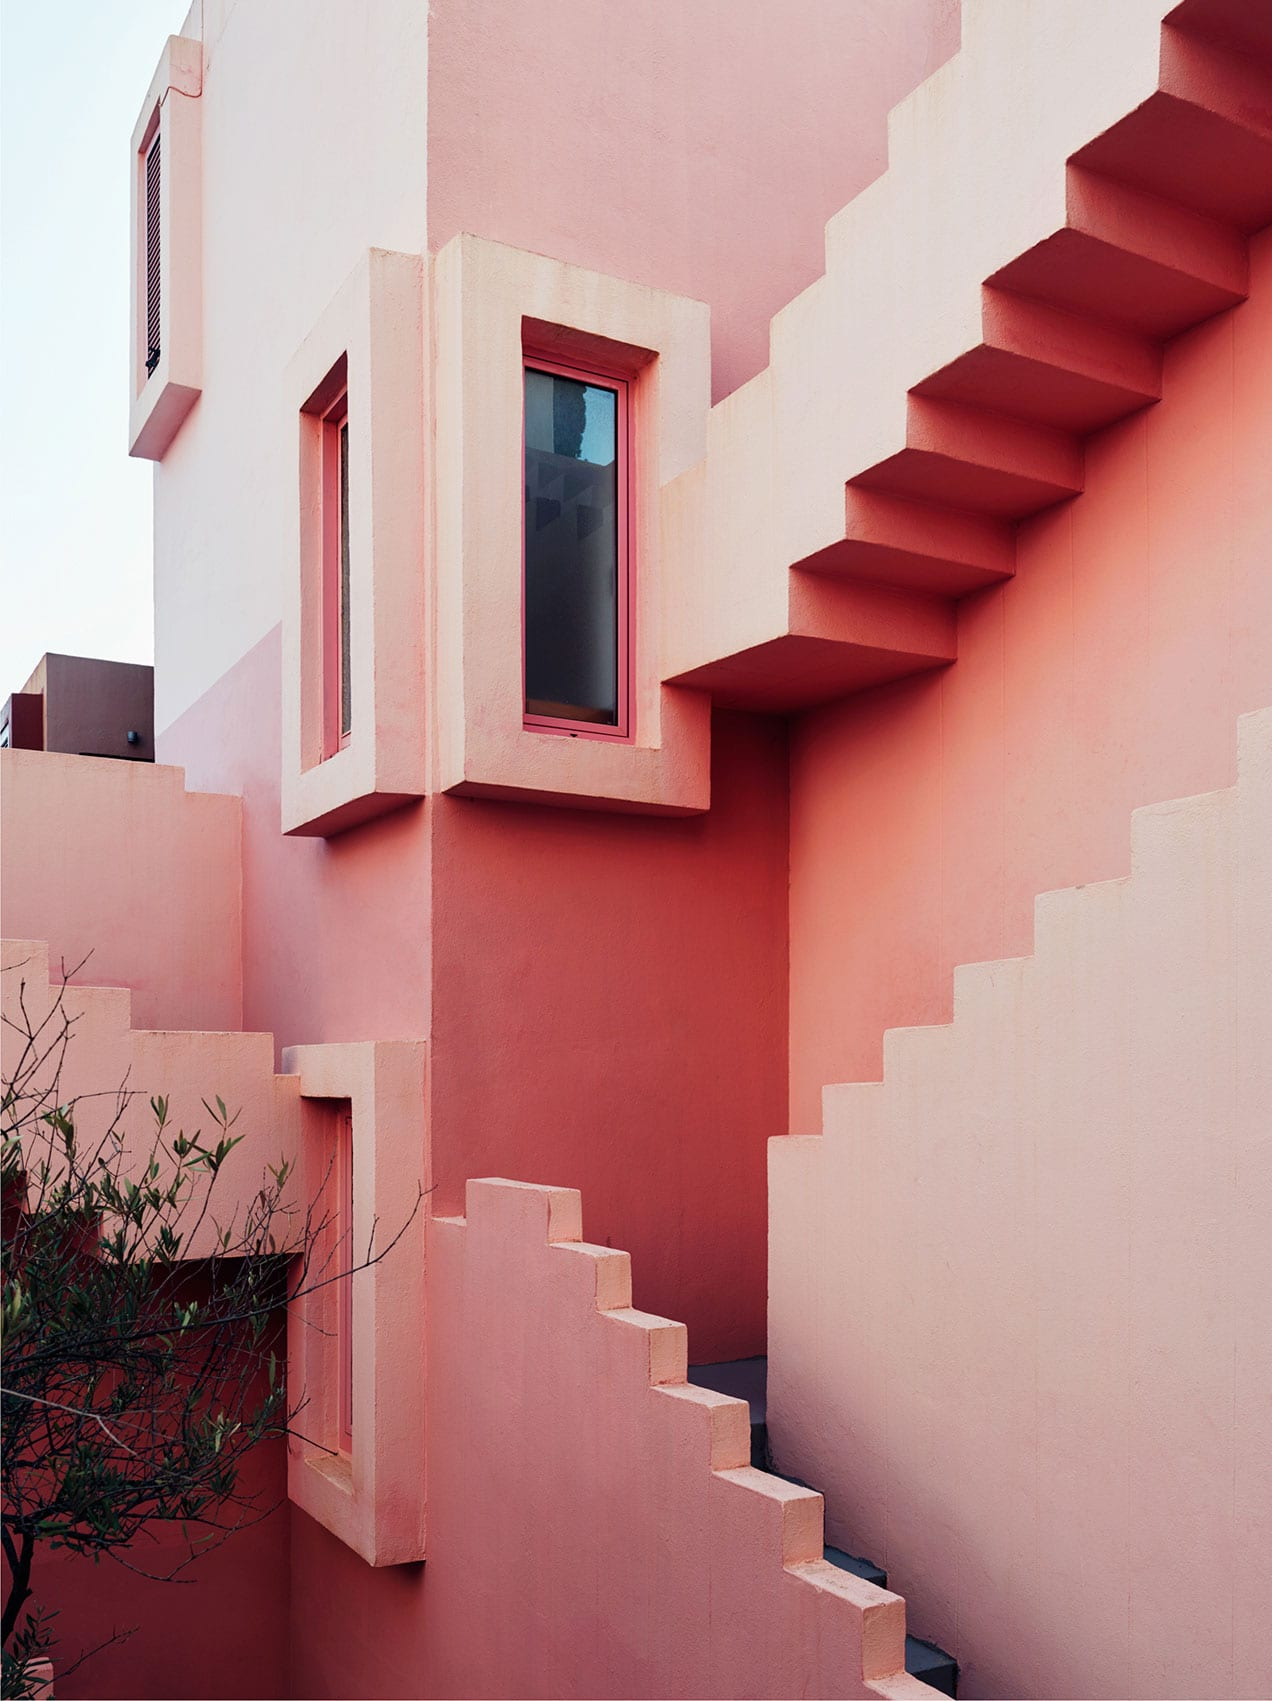 Ricardo Bofill S La Muralla Roja Housing Project In Spain